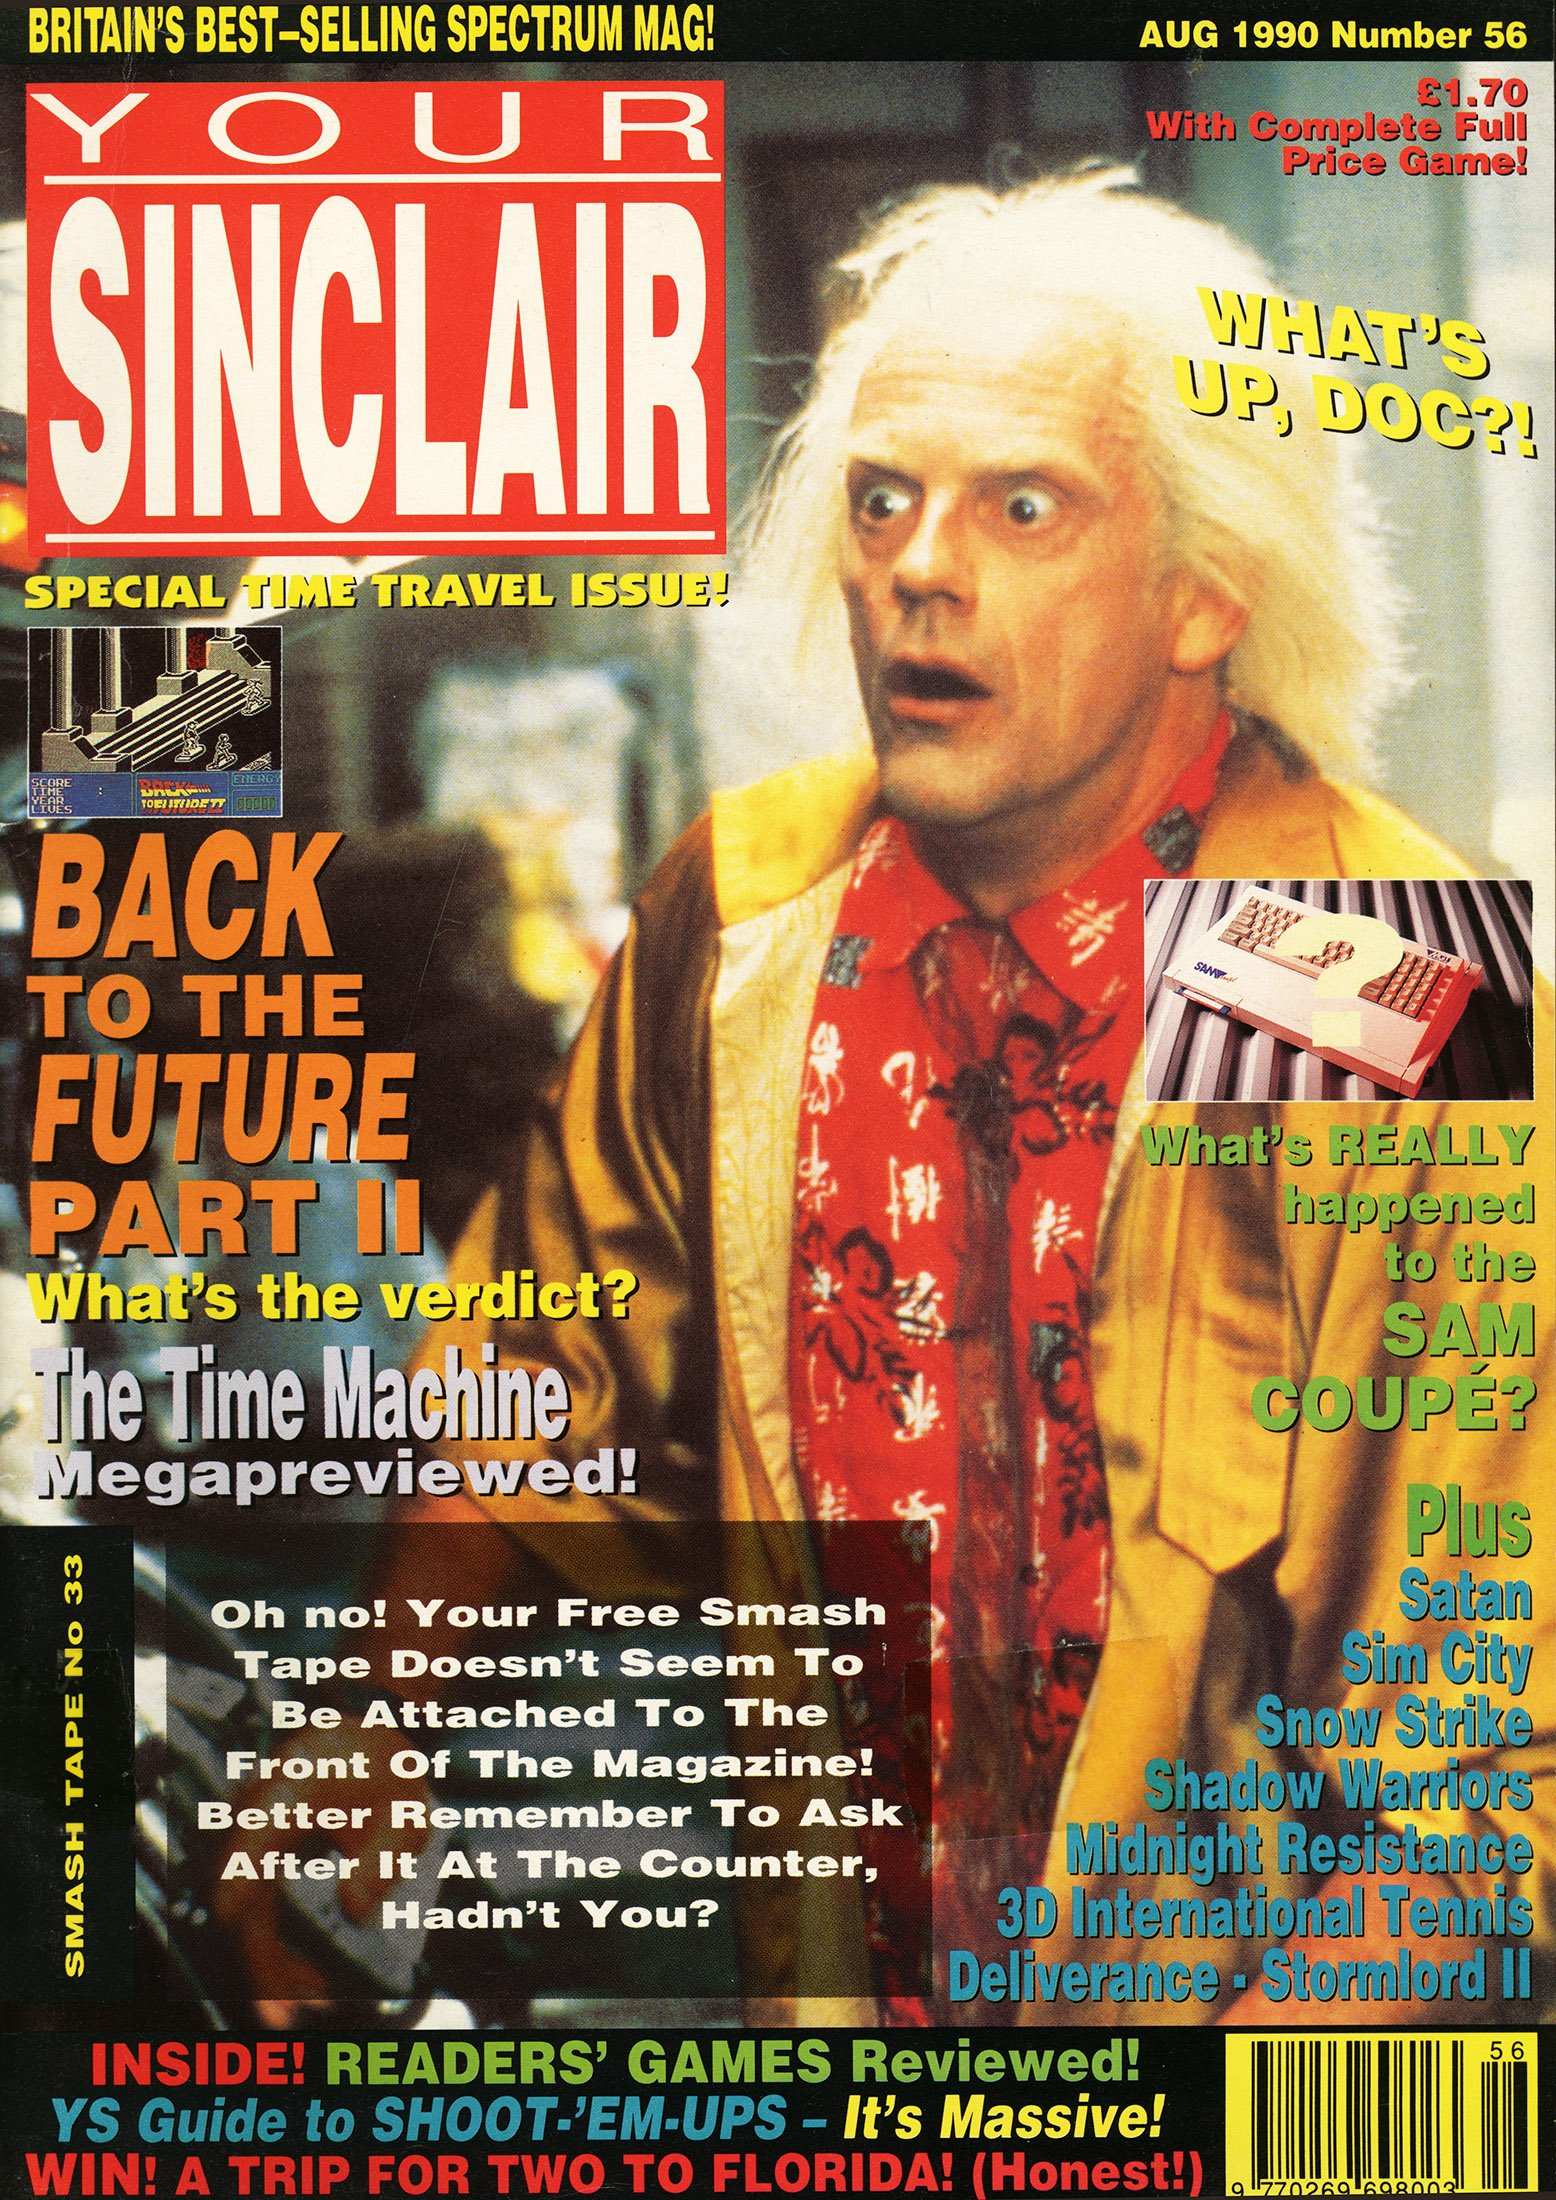 Your Sinclair Issue 56 (August 1990)